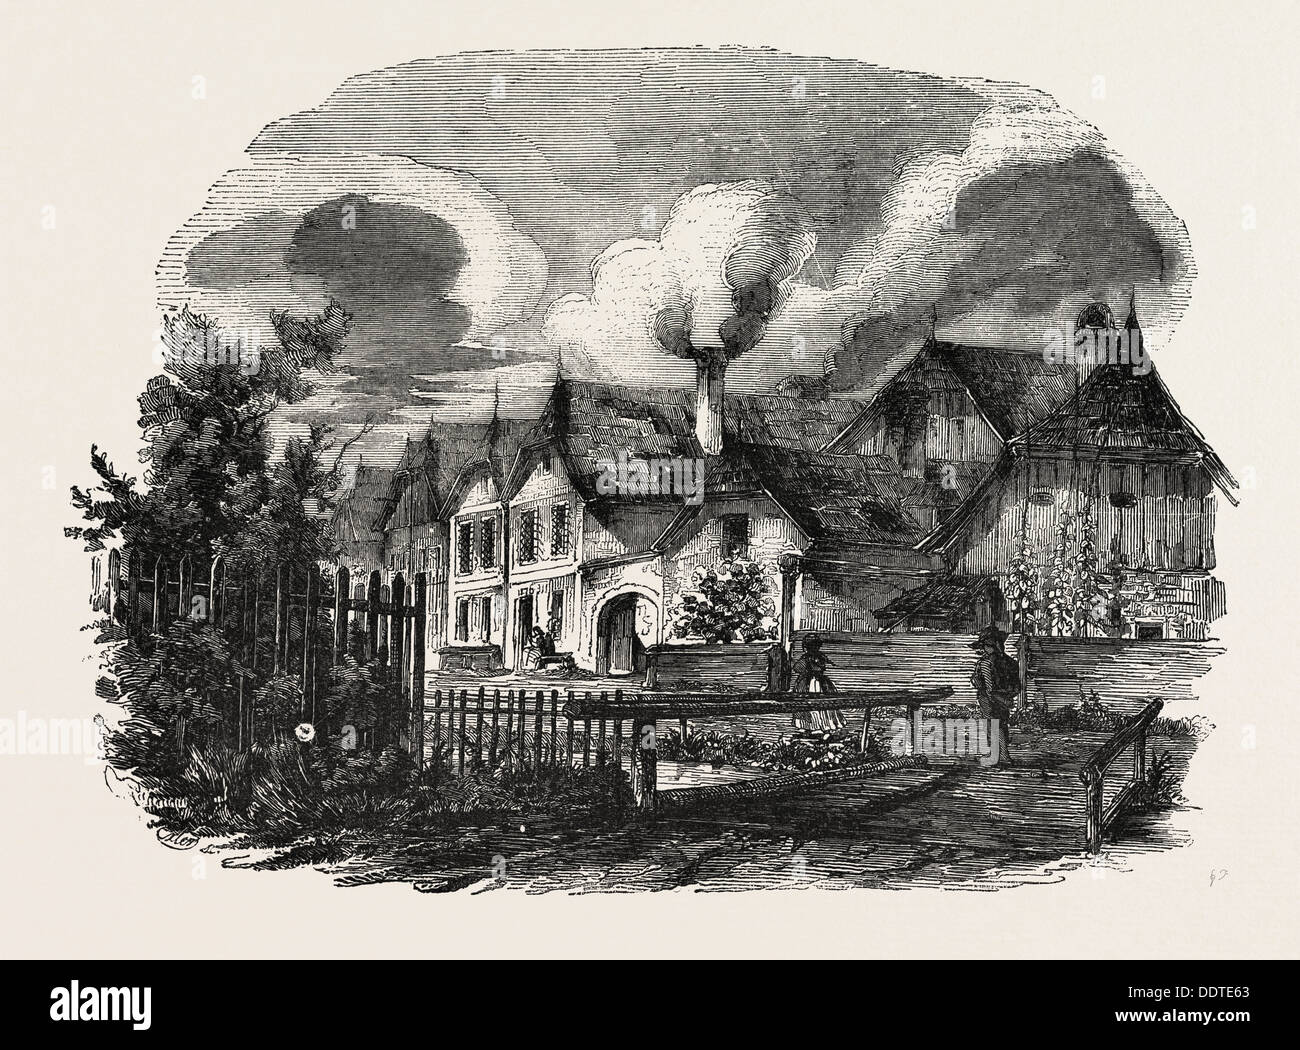 WELLS, IN UPPER AUSTRIA, A WOODCUT IN THE AUSTRIAN PRINTING ESTABLISHMENT, 1851 engraving - Stock Image